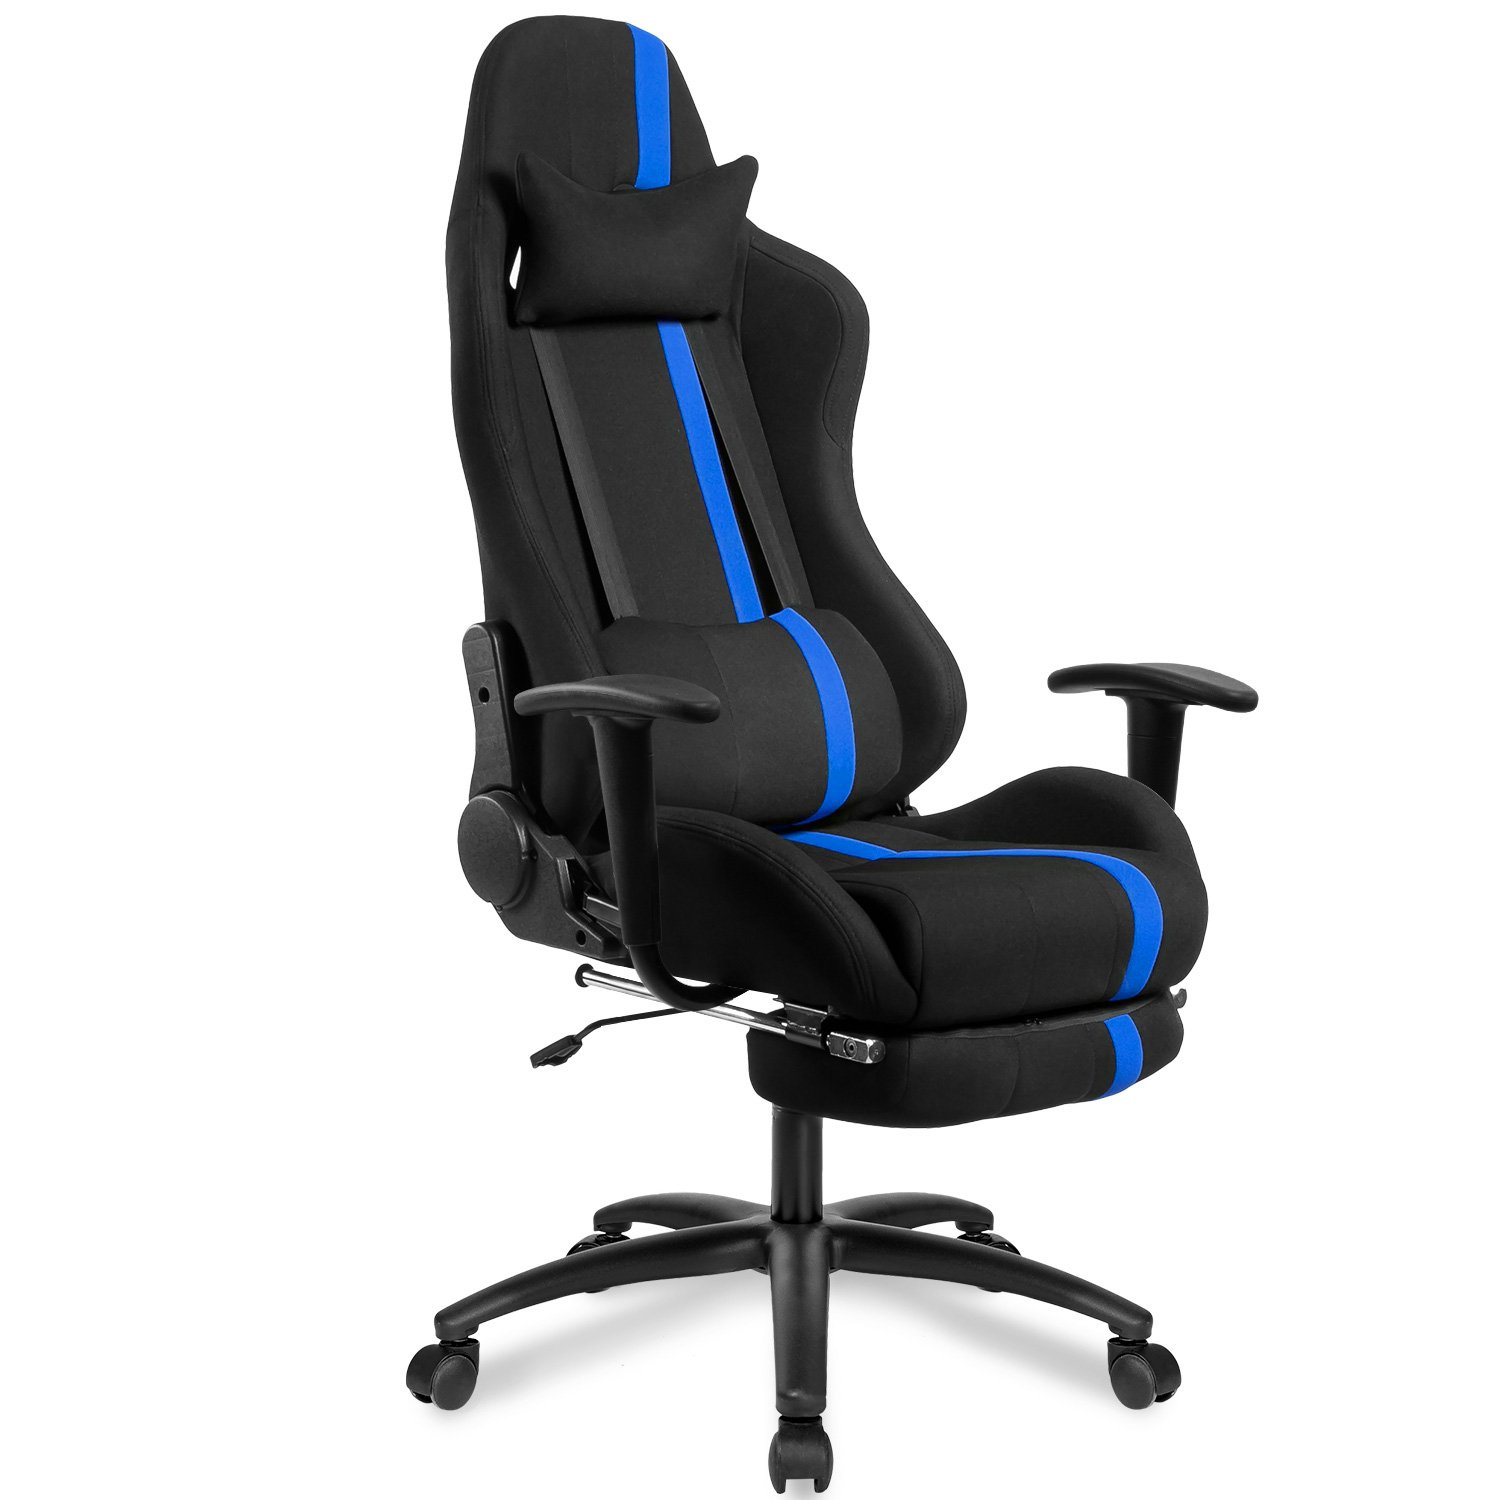 Merax High Back Executive Mesh Racing Chair Ergonomic Series Reclining Office Chair with Back Support and Footrest (blue)